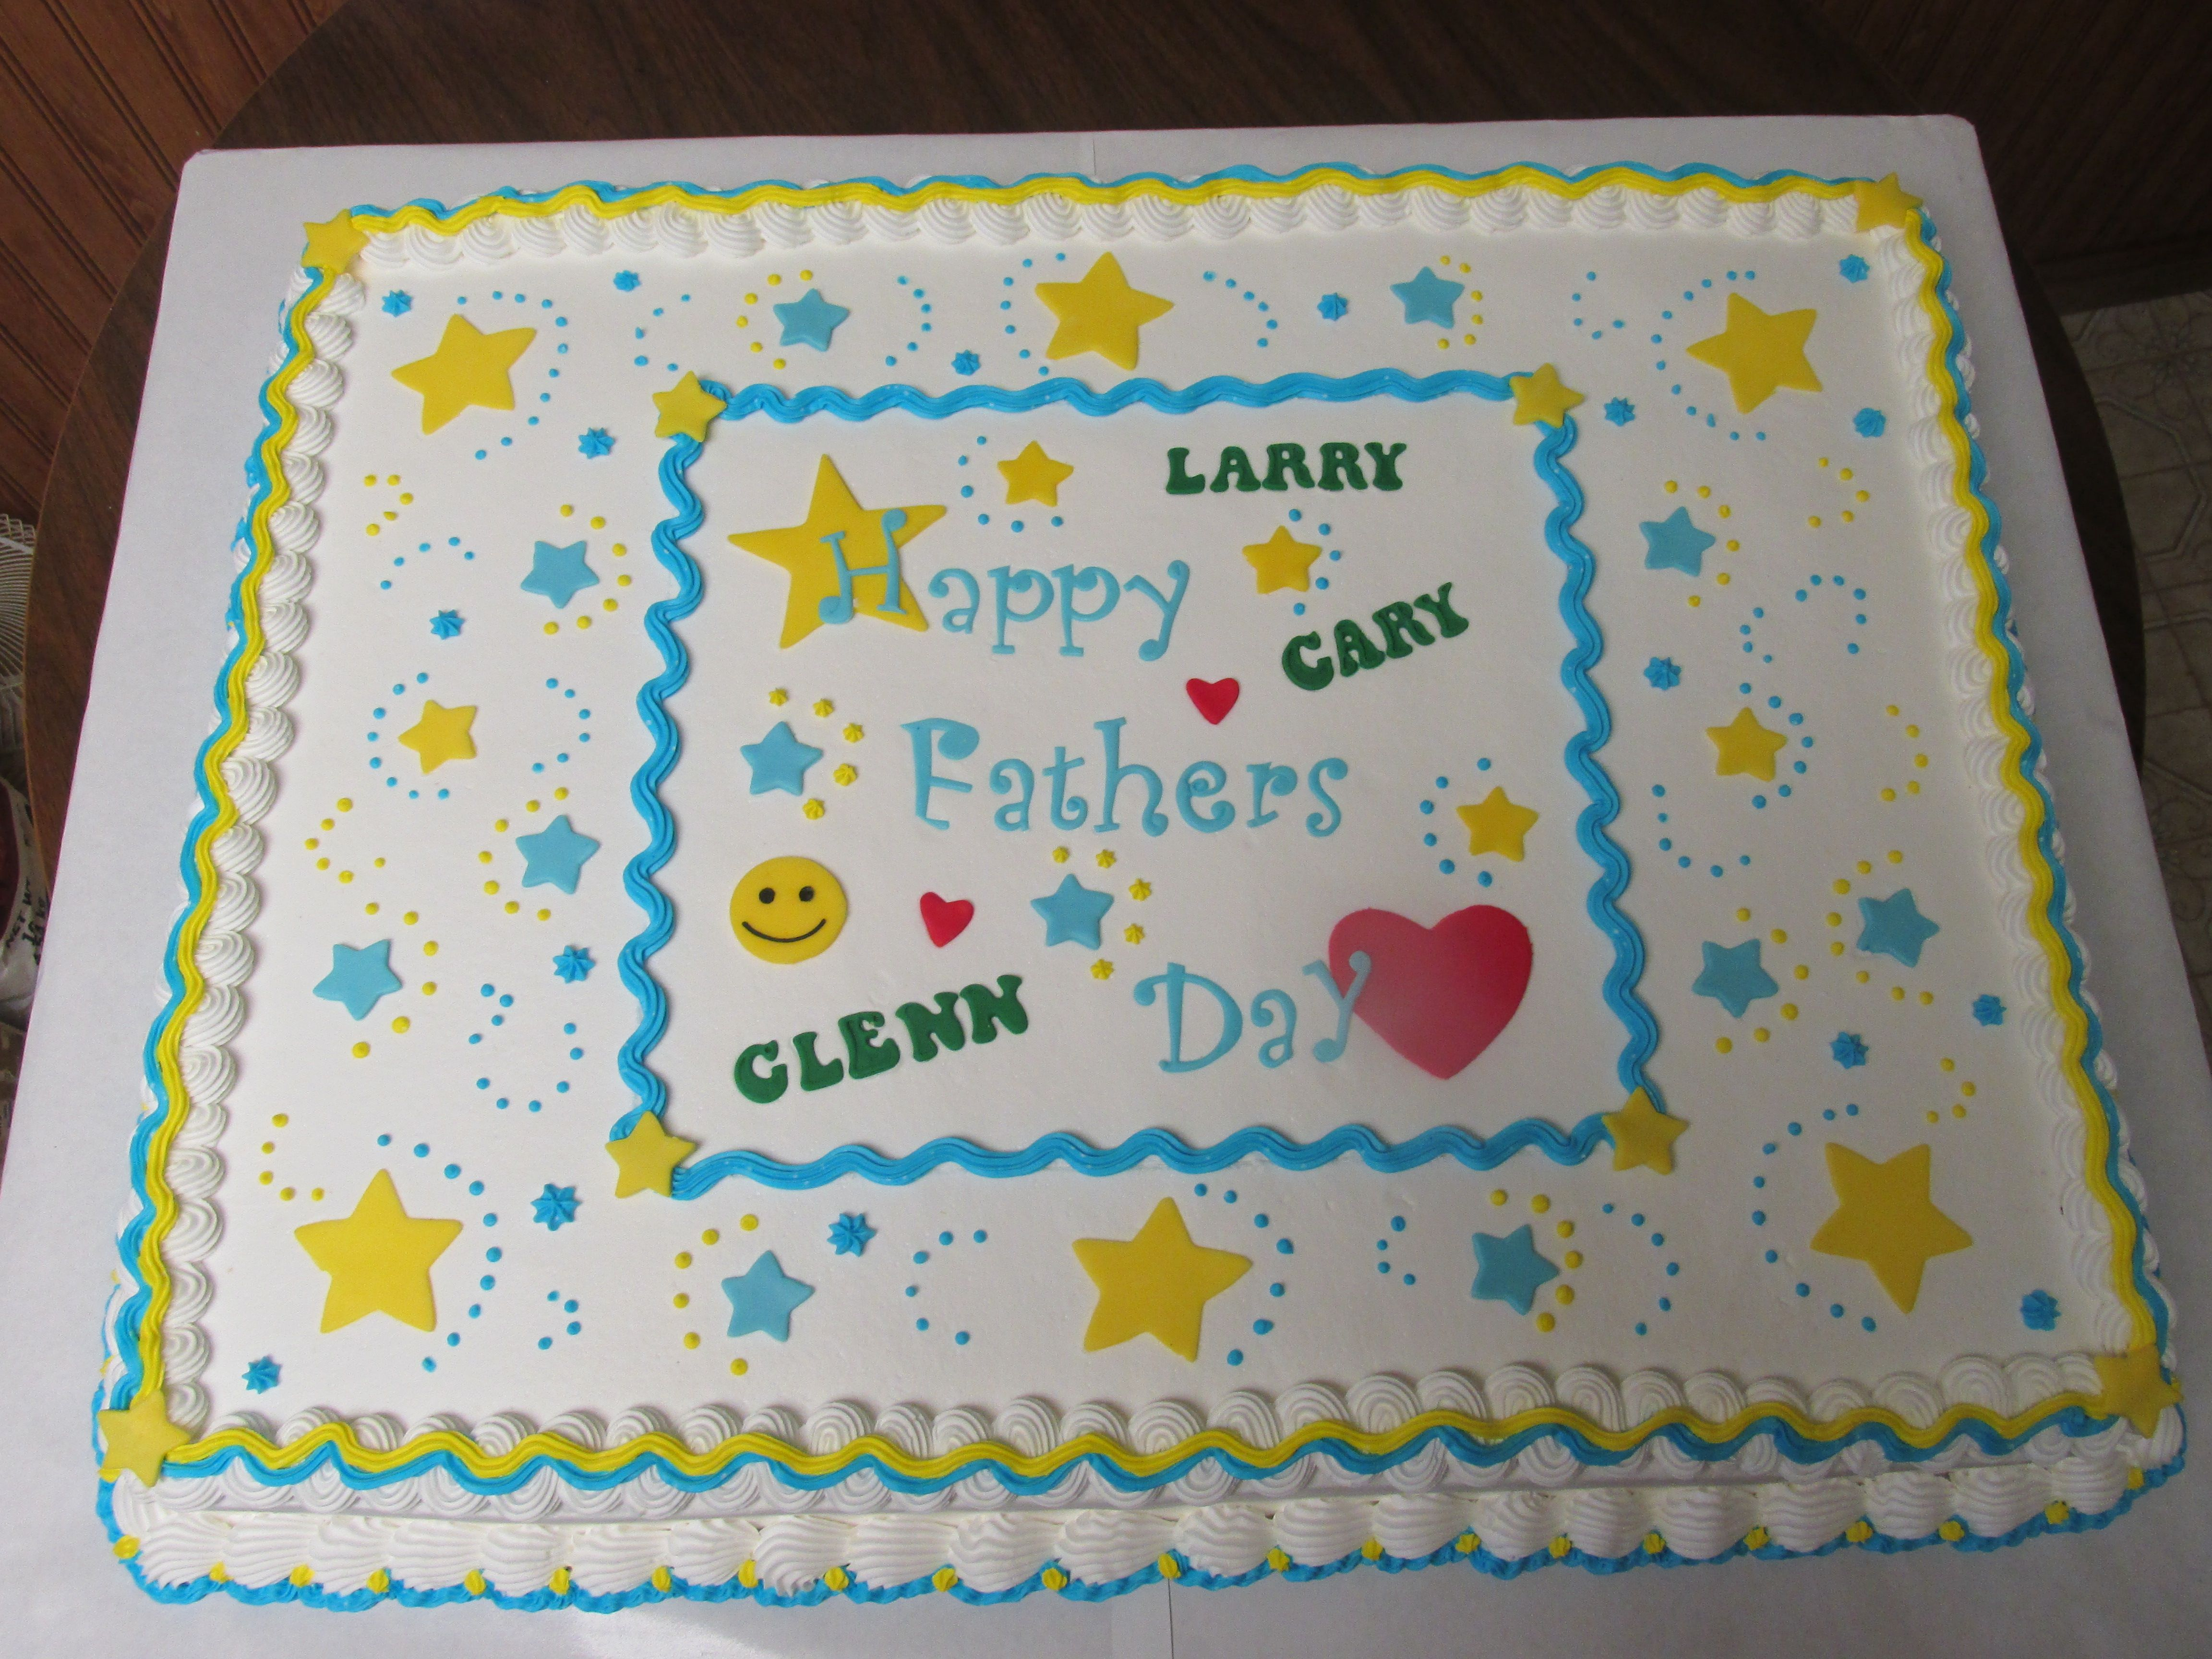 Full sheet cake for three fathers on fathers day full